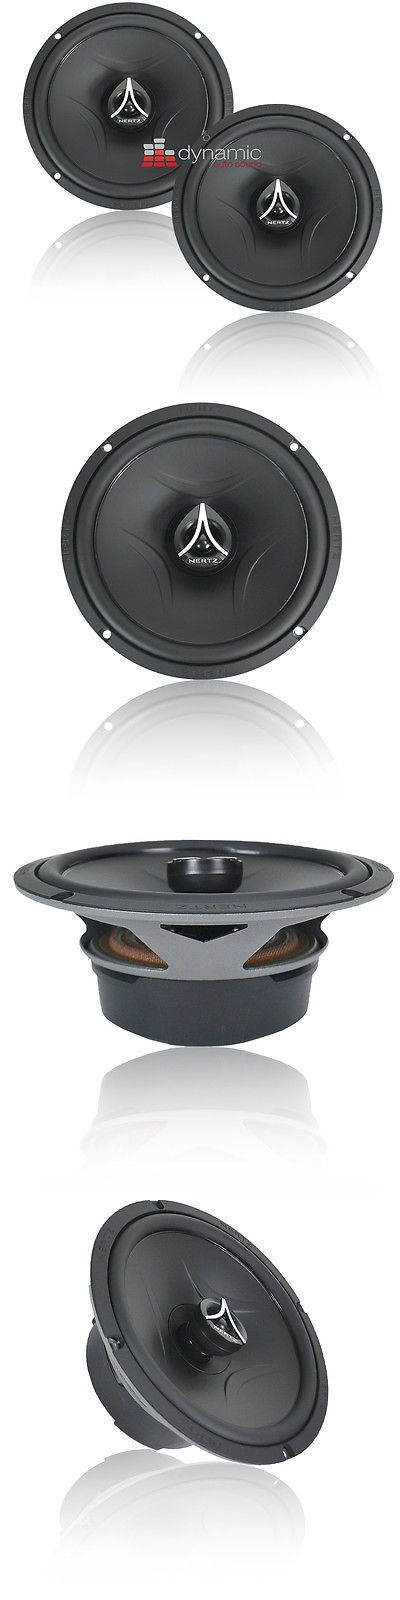 Car Speakers and Speaker Systems: Hertz Esk 165.5 Energy Series 6.5 2-Way Car Audio Component Speakers 300W New BUY IT NOW ONLY: $229.95